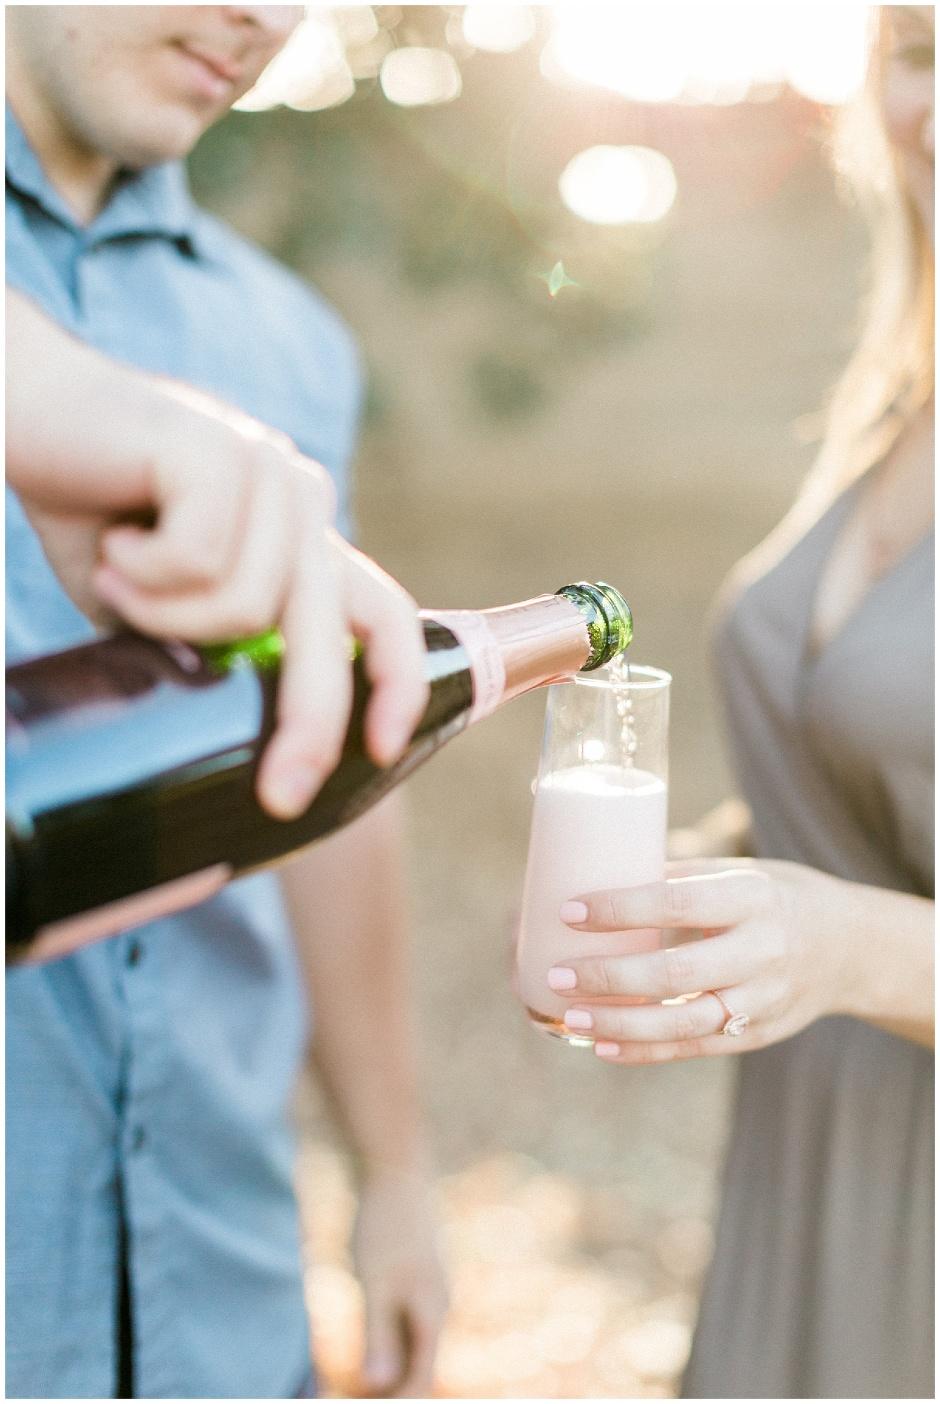 champagne being poured into a stemless champagne flute